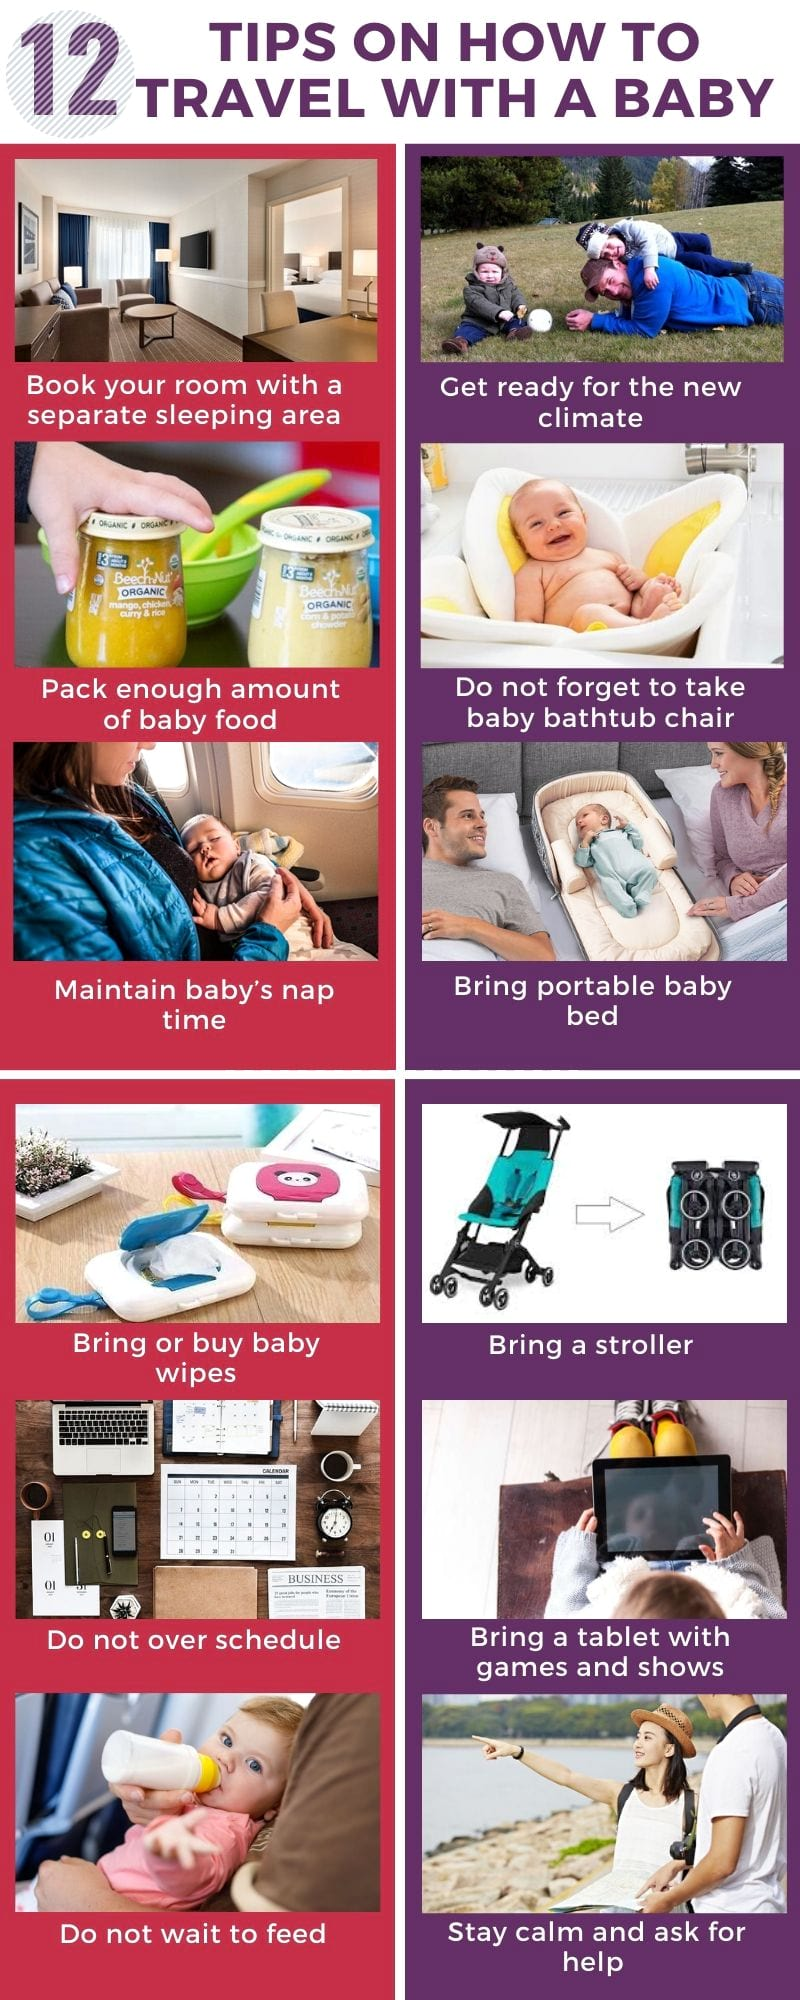 tips on how to travel with a baby